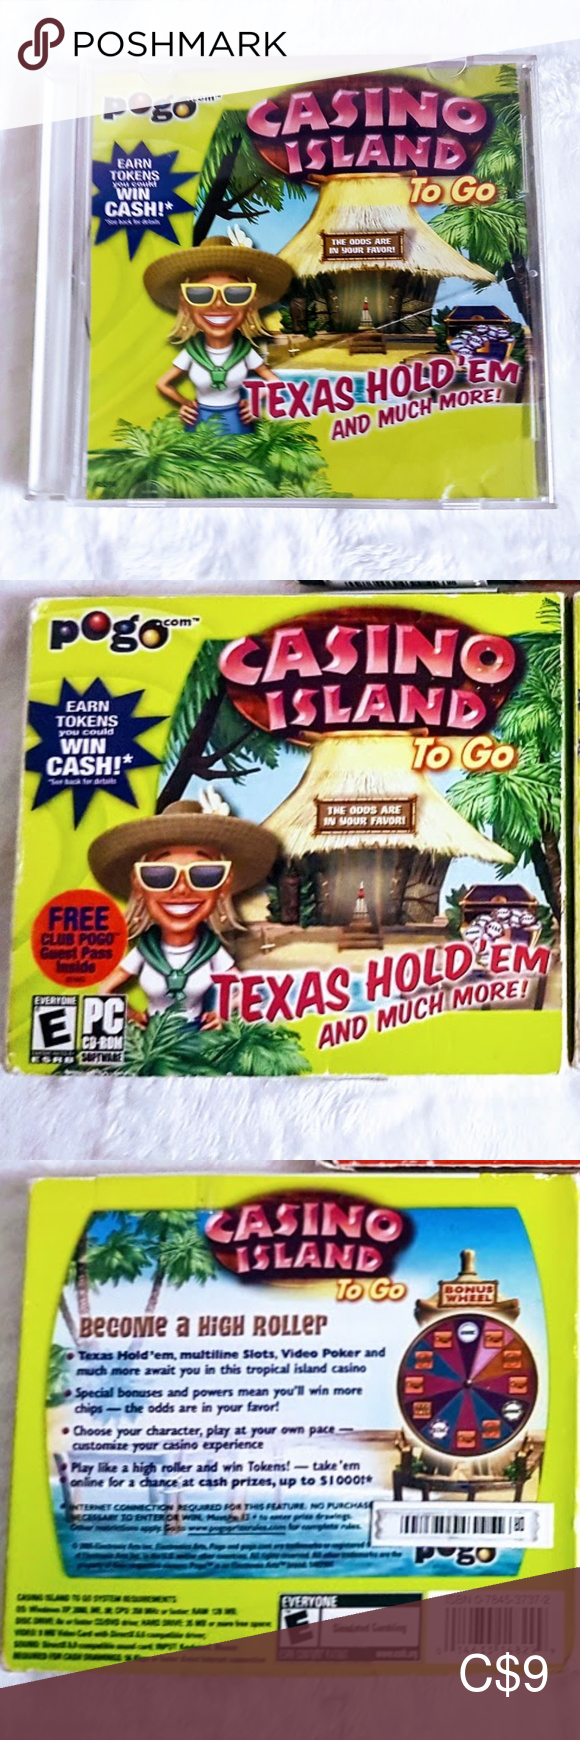 Casino Island to go Texas Hold 'em Video Game in 2020